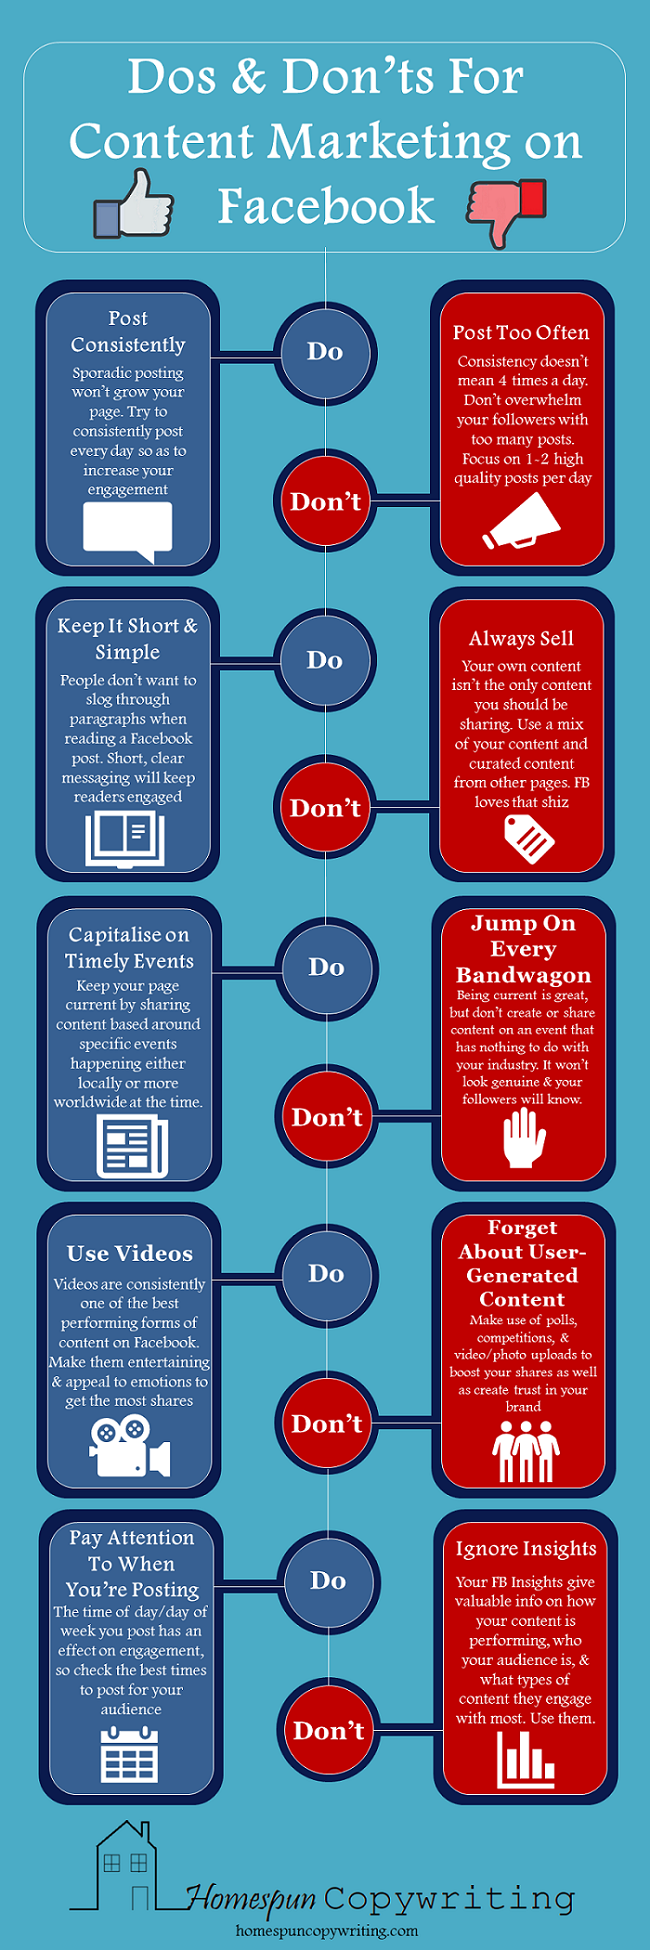 Facebook-Dos-Don'ts-Content-Marketing-Inforgraphic